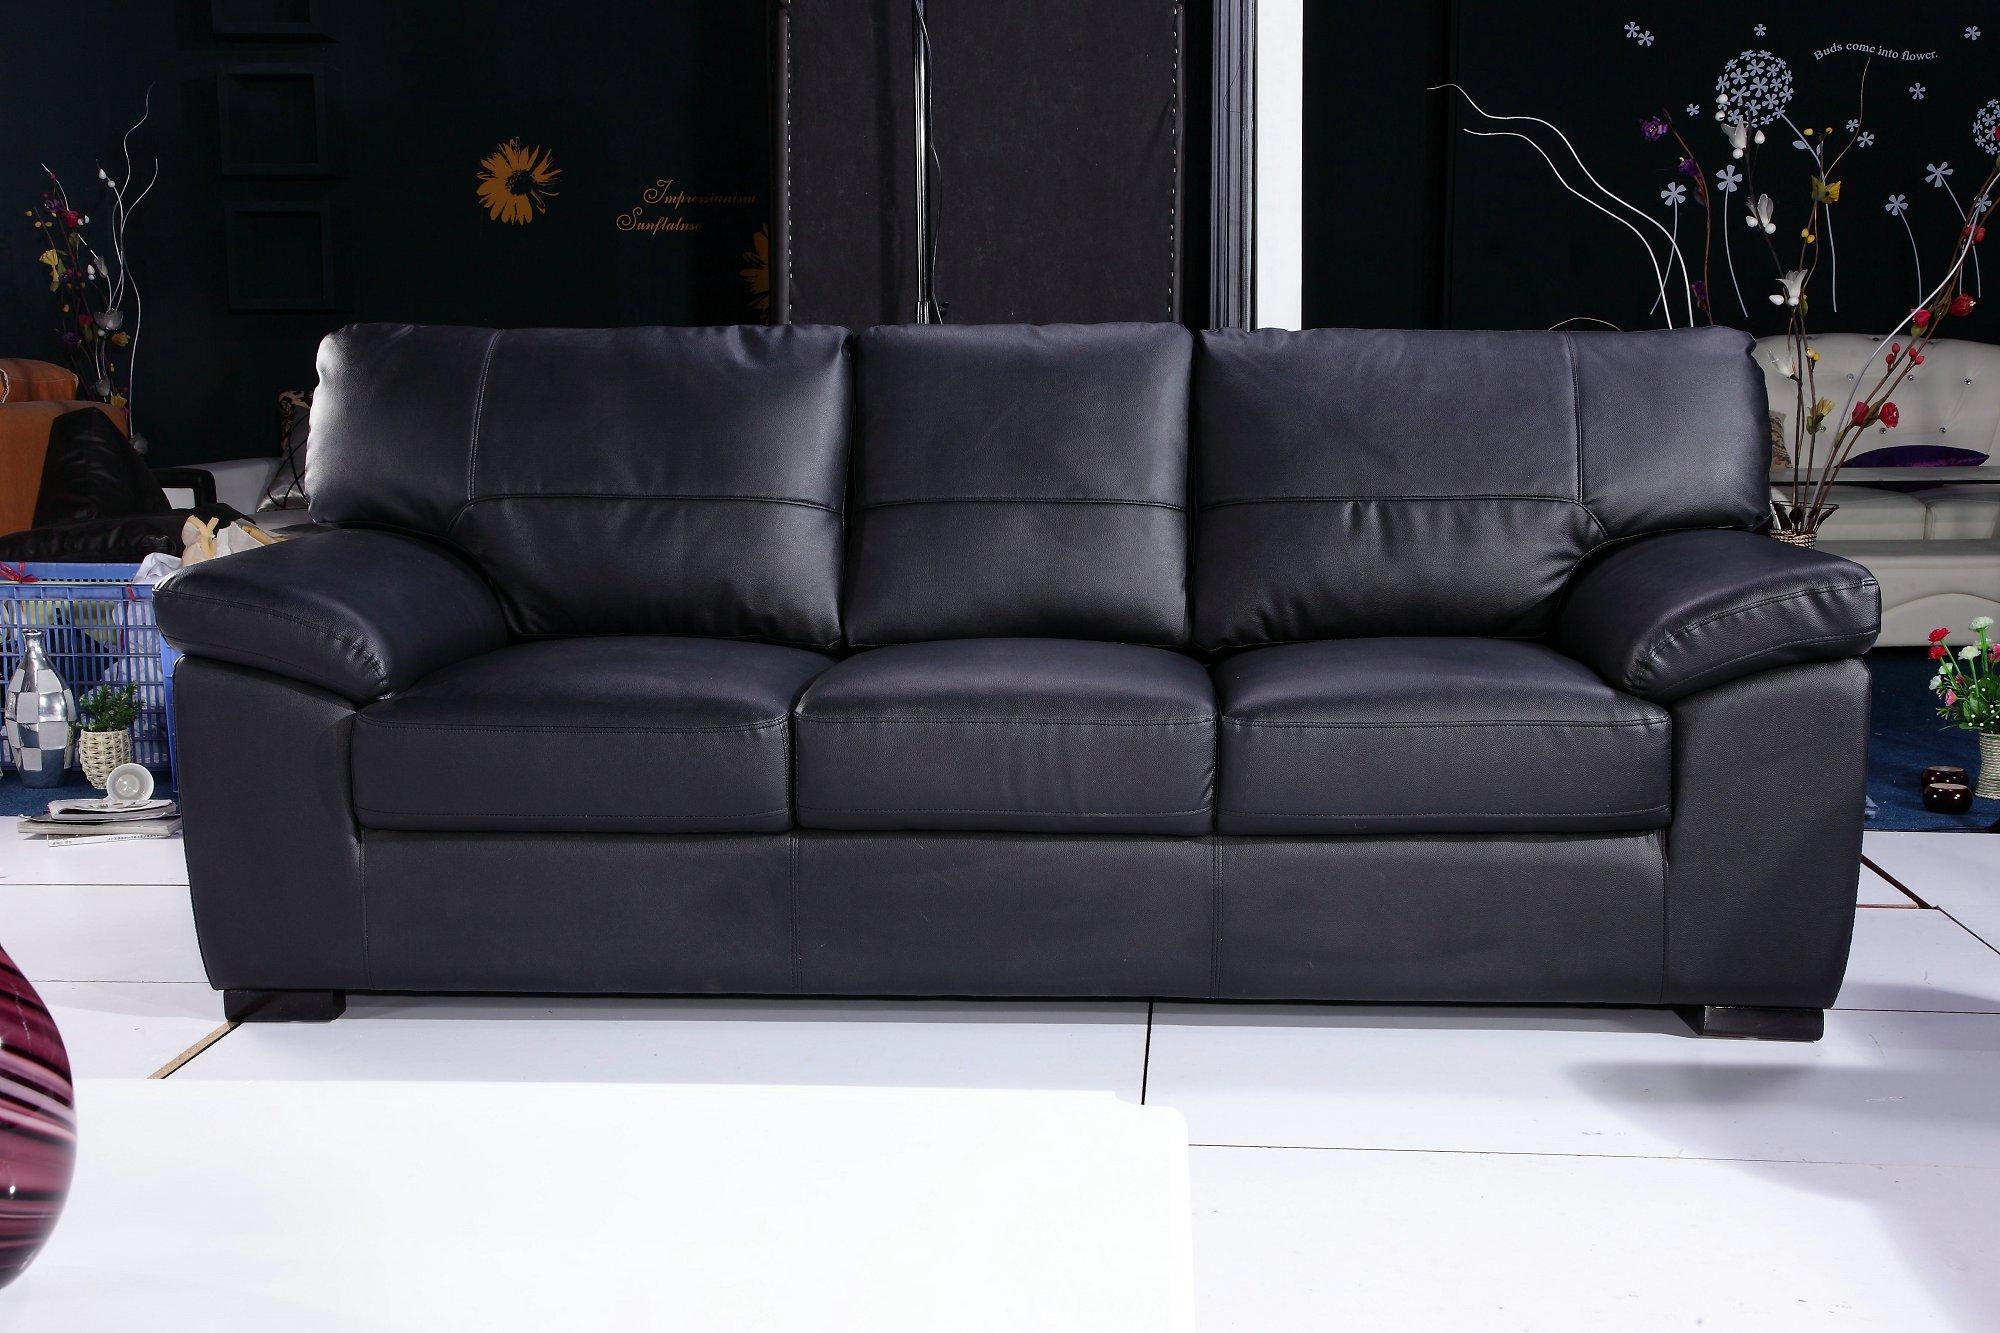 Three Seat Couch Adorable Montclair 3 Seater Sofa | Crate And Intended For Modern 3 Seater Sofas (View 14 of 20)